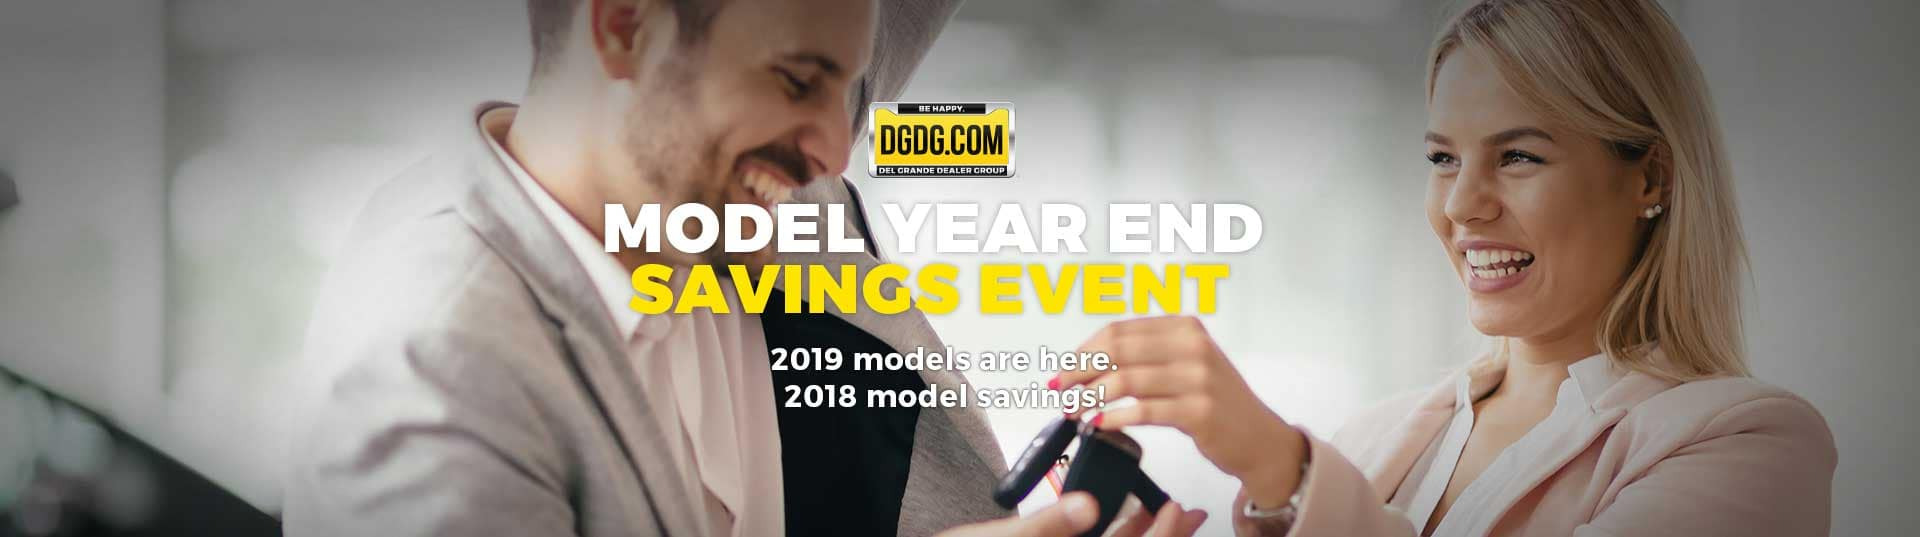 Model Year End Event Banner